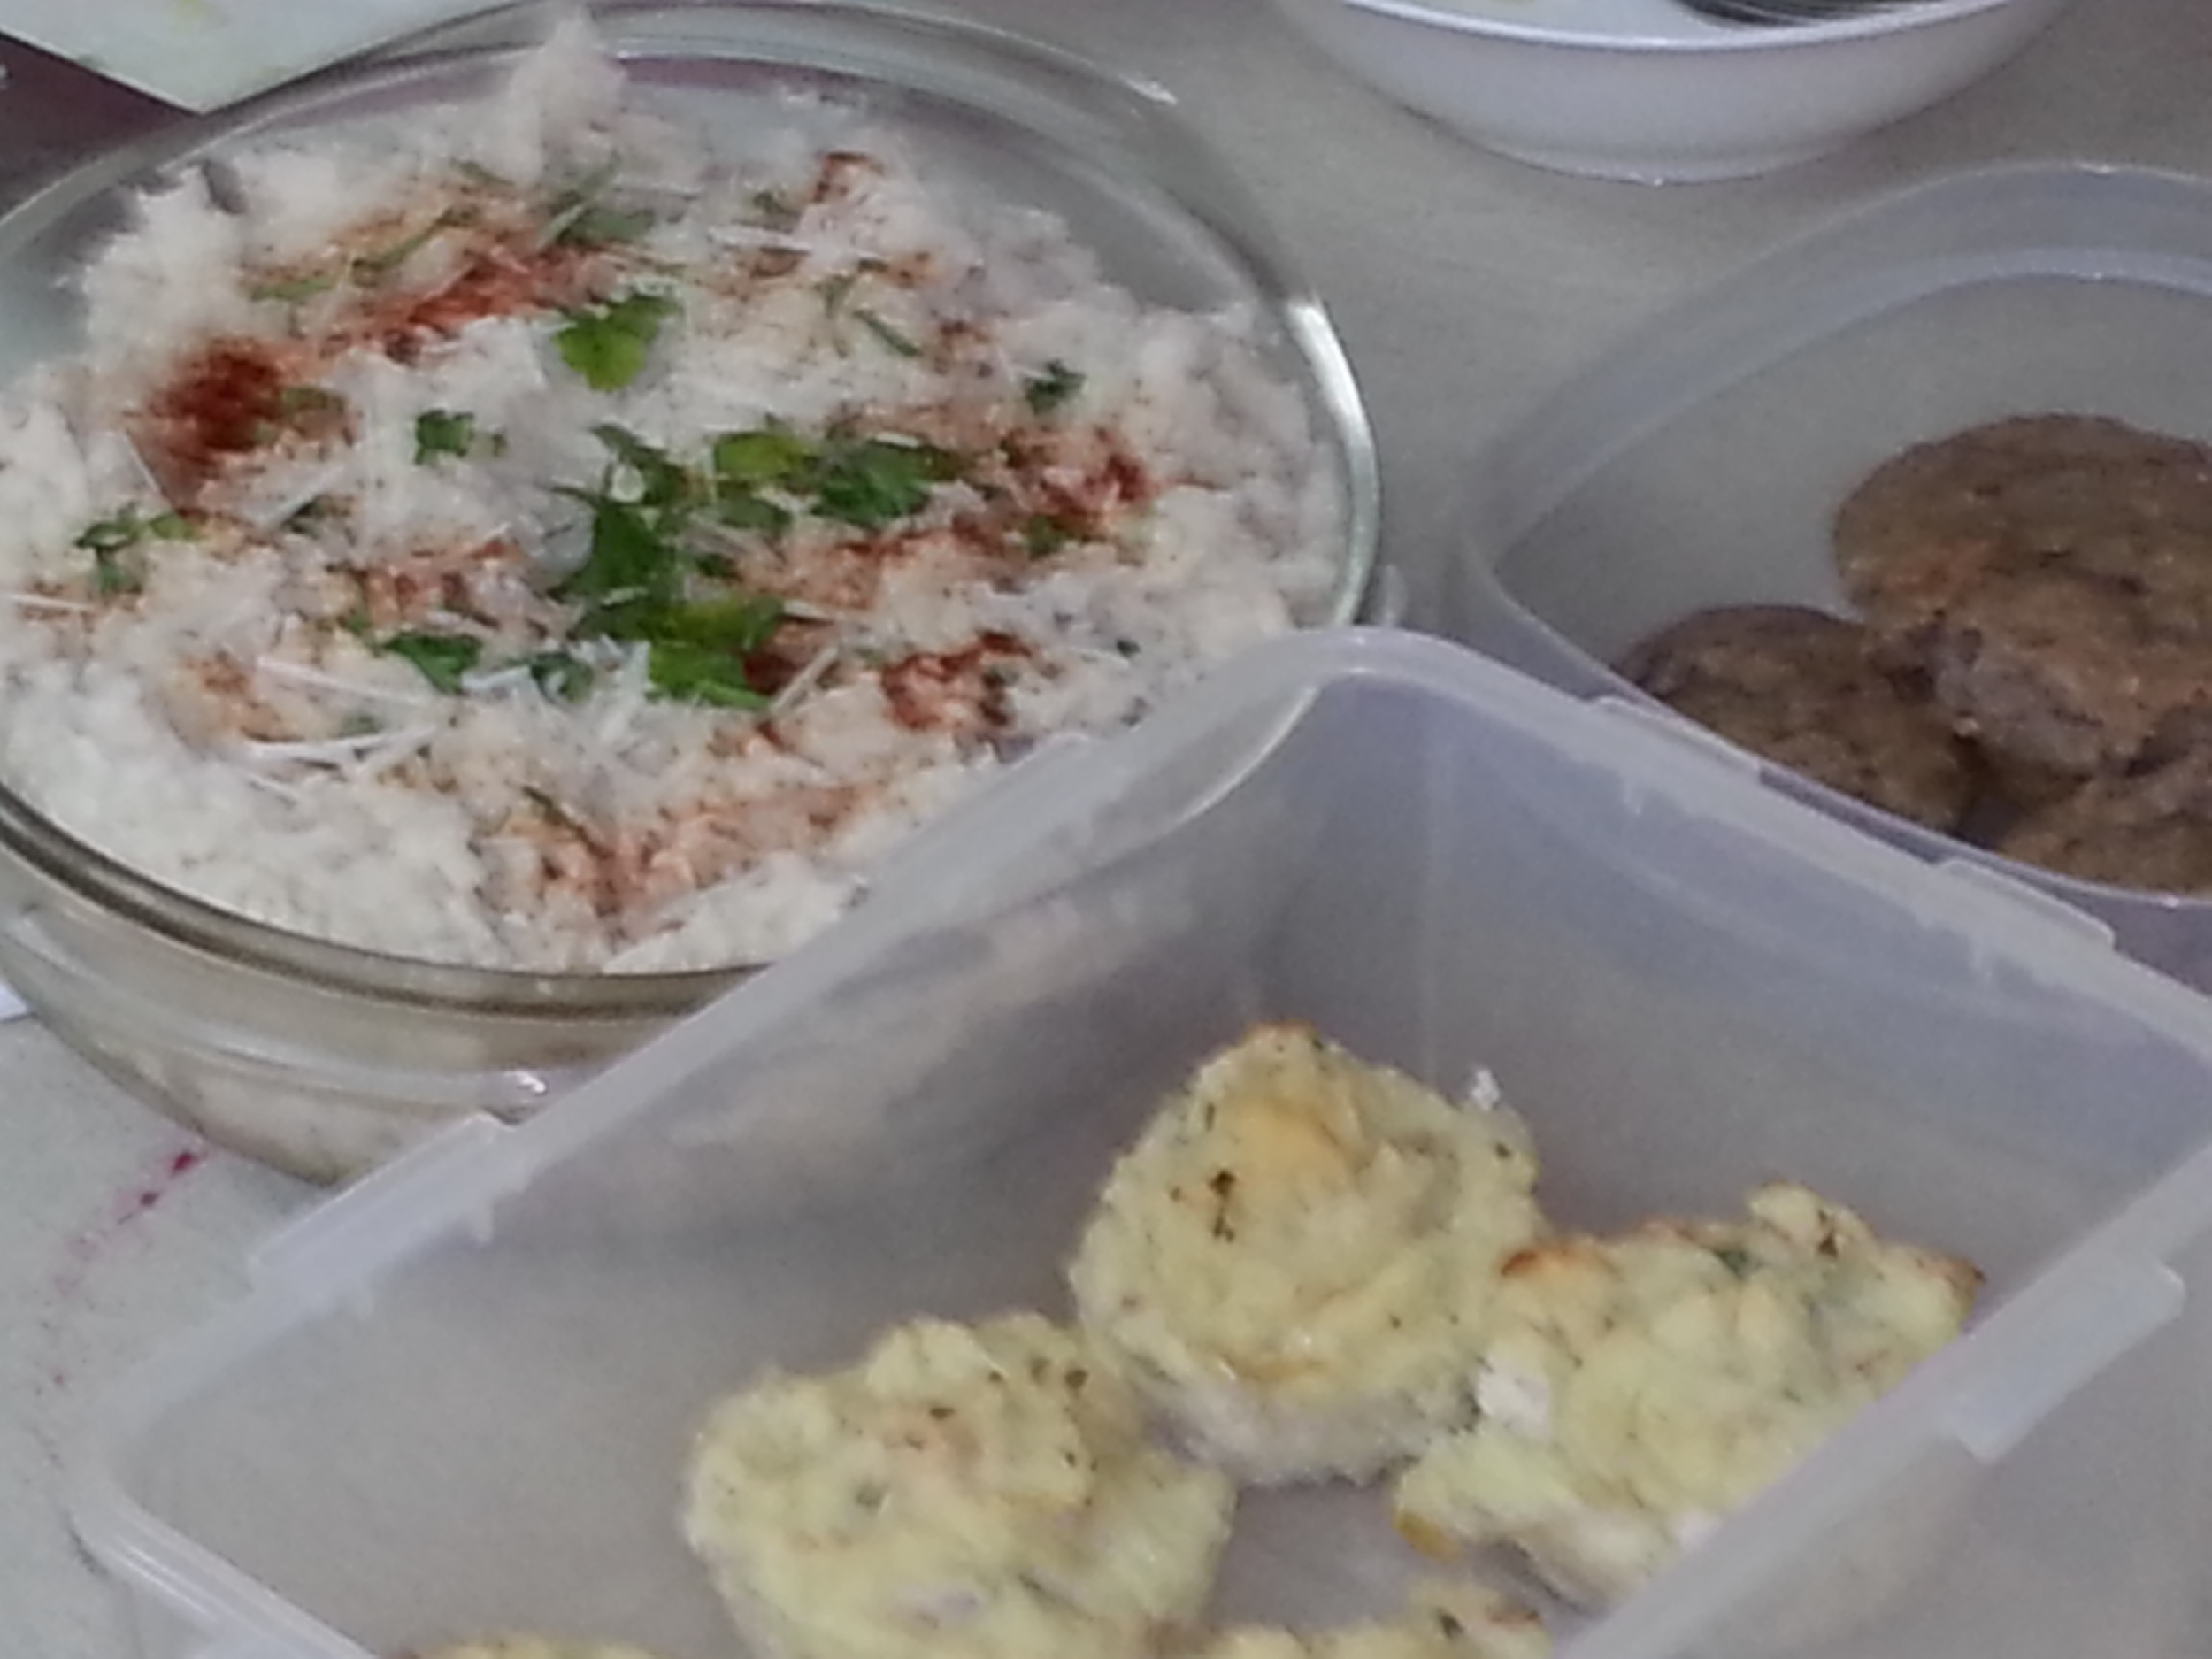 Potatoe Puffs, Turkey Shepherd's Pie, Cranberry Oat Pecan Muffins, Marinated Bean Salad (not shown)